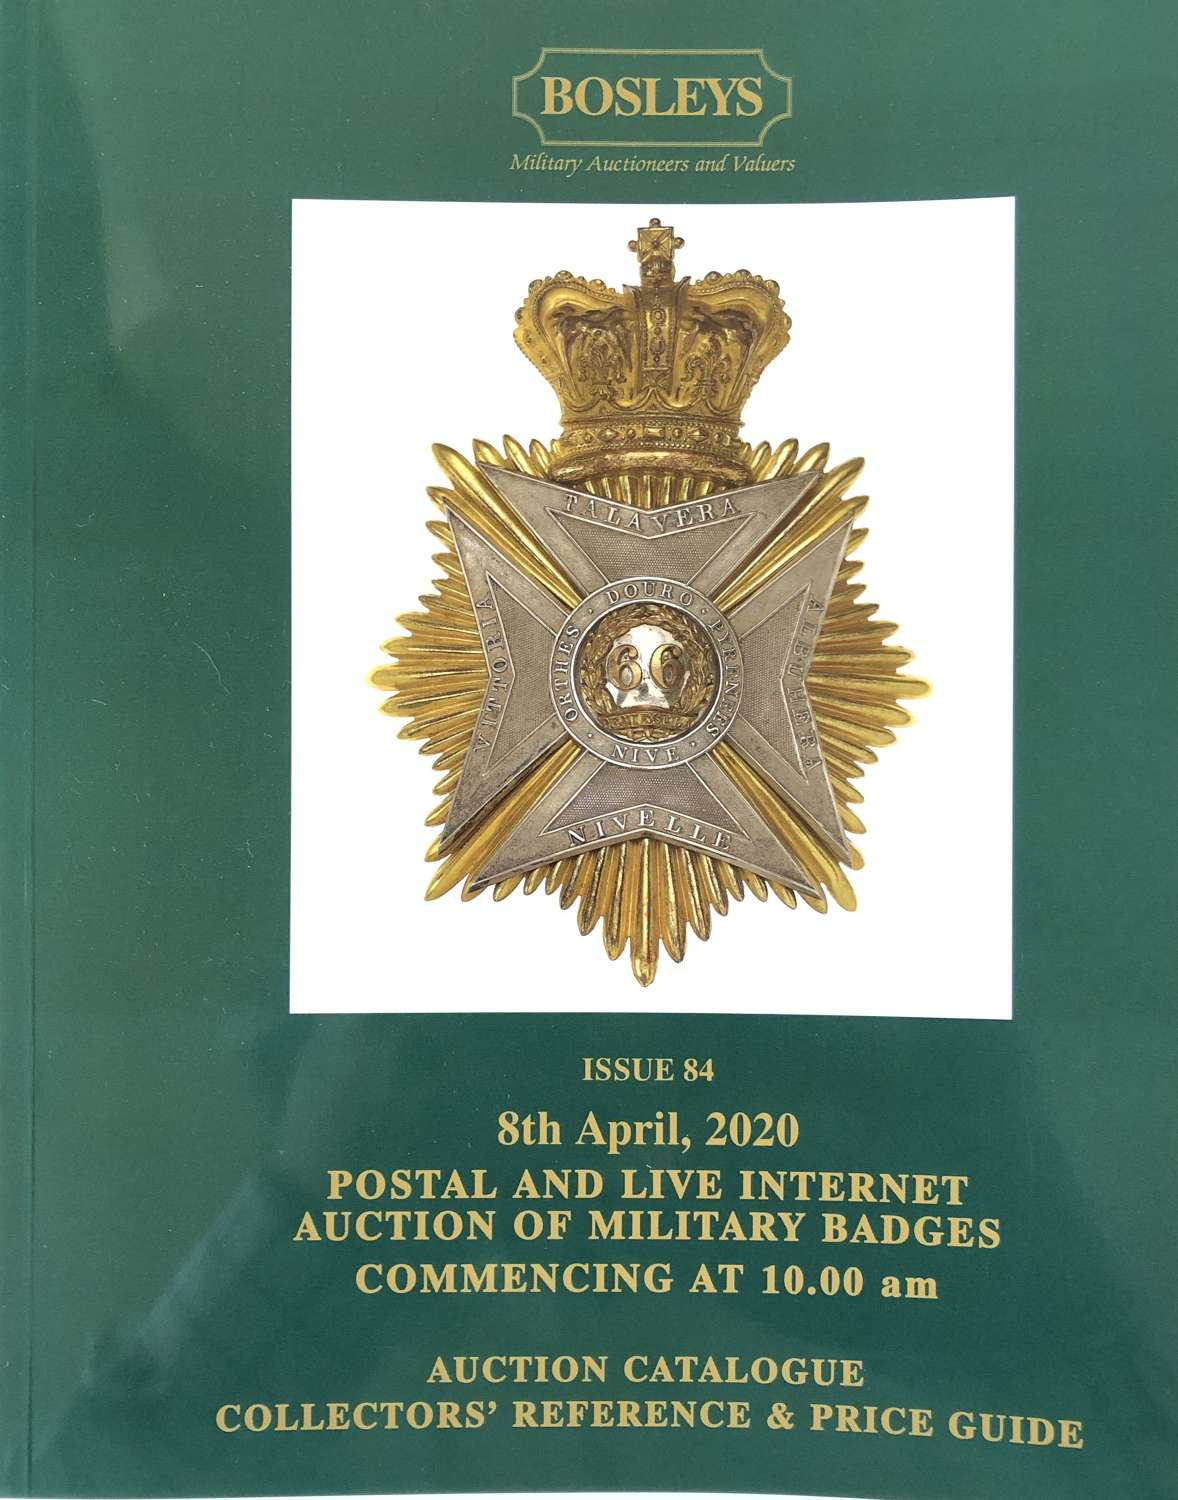 ORIGINAL MILITARY BADGES, TITLES & FORMATION SIGNS JULY 2020